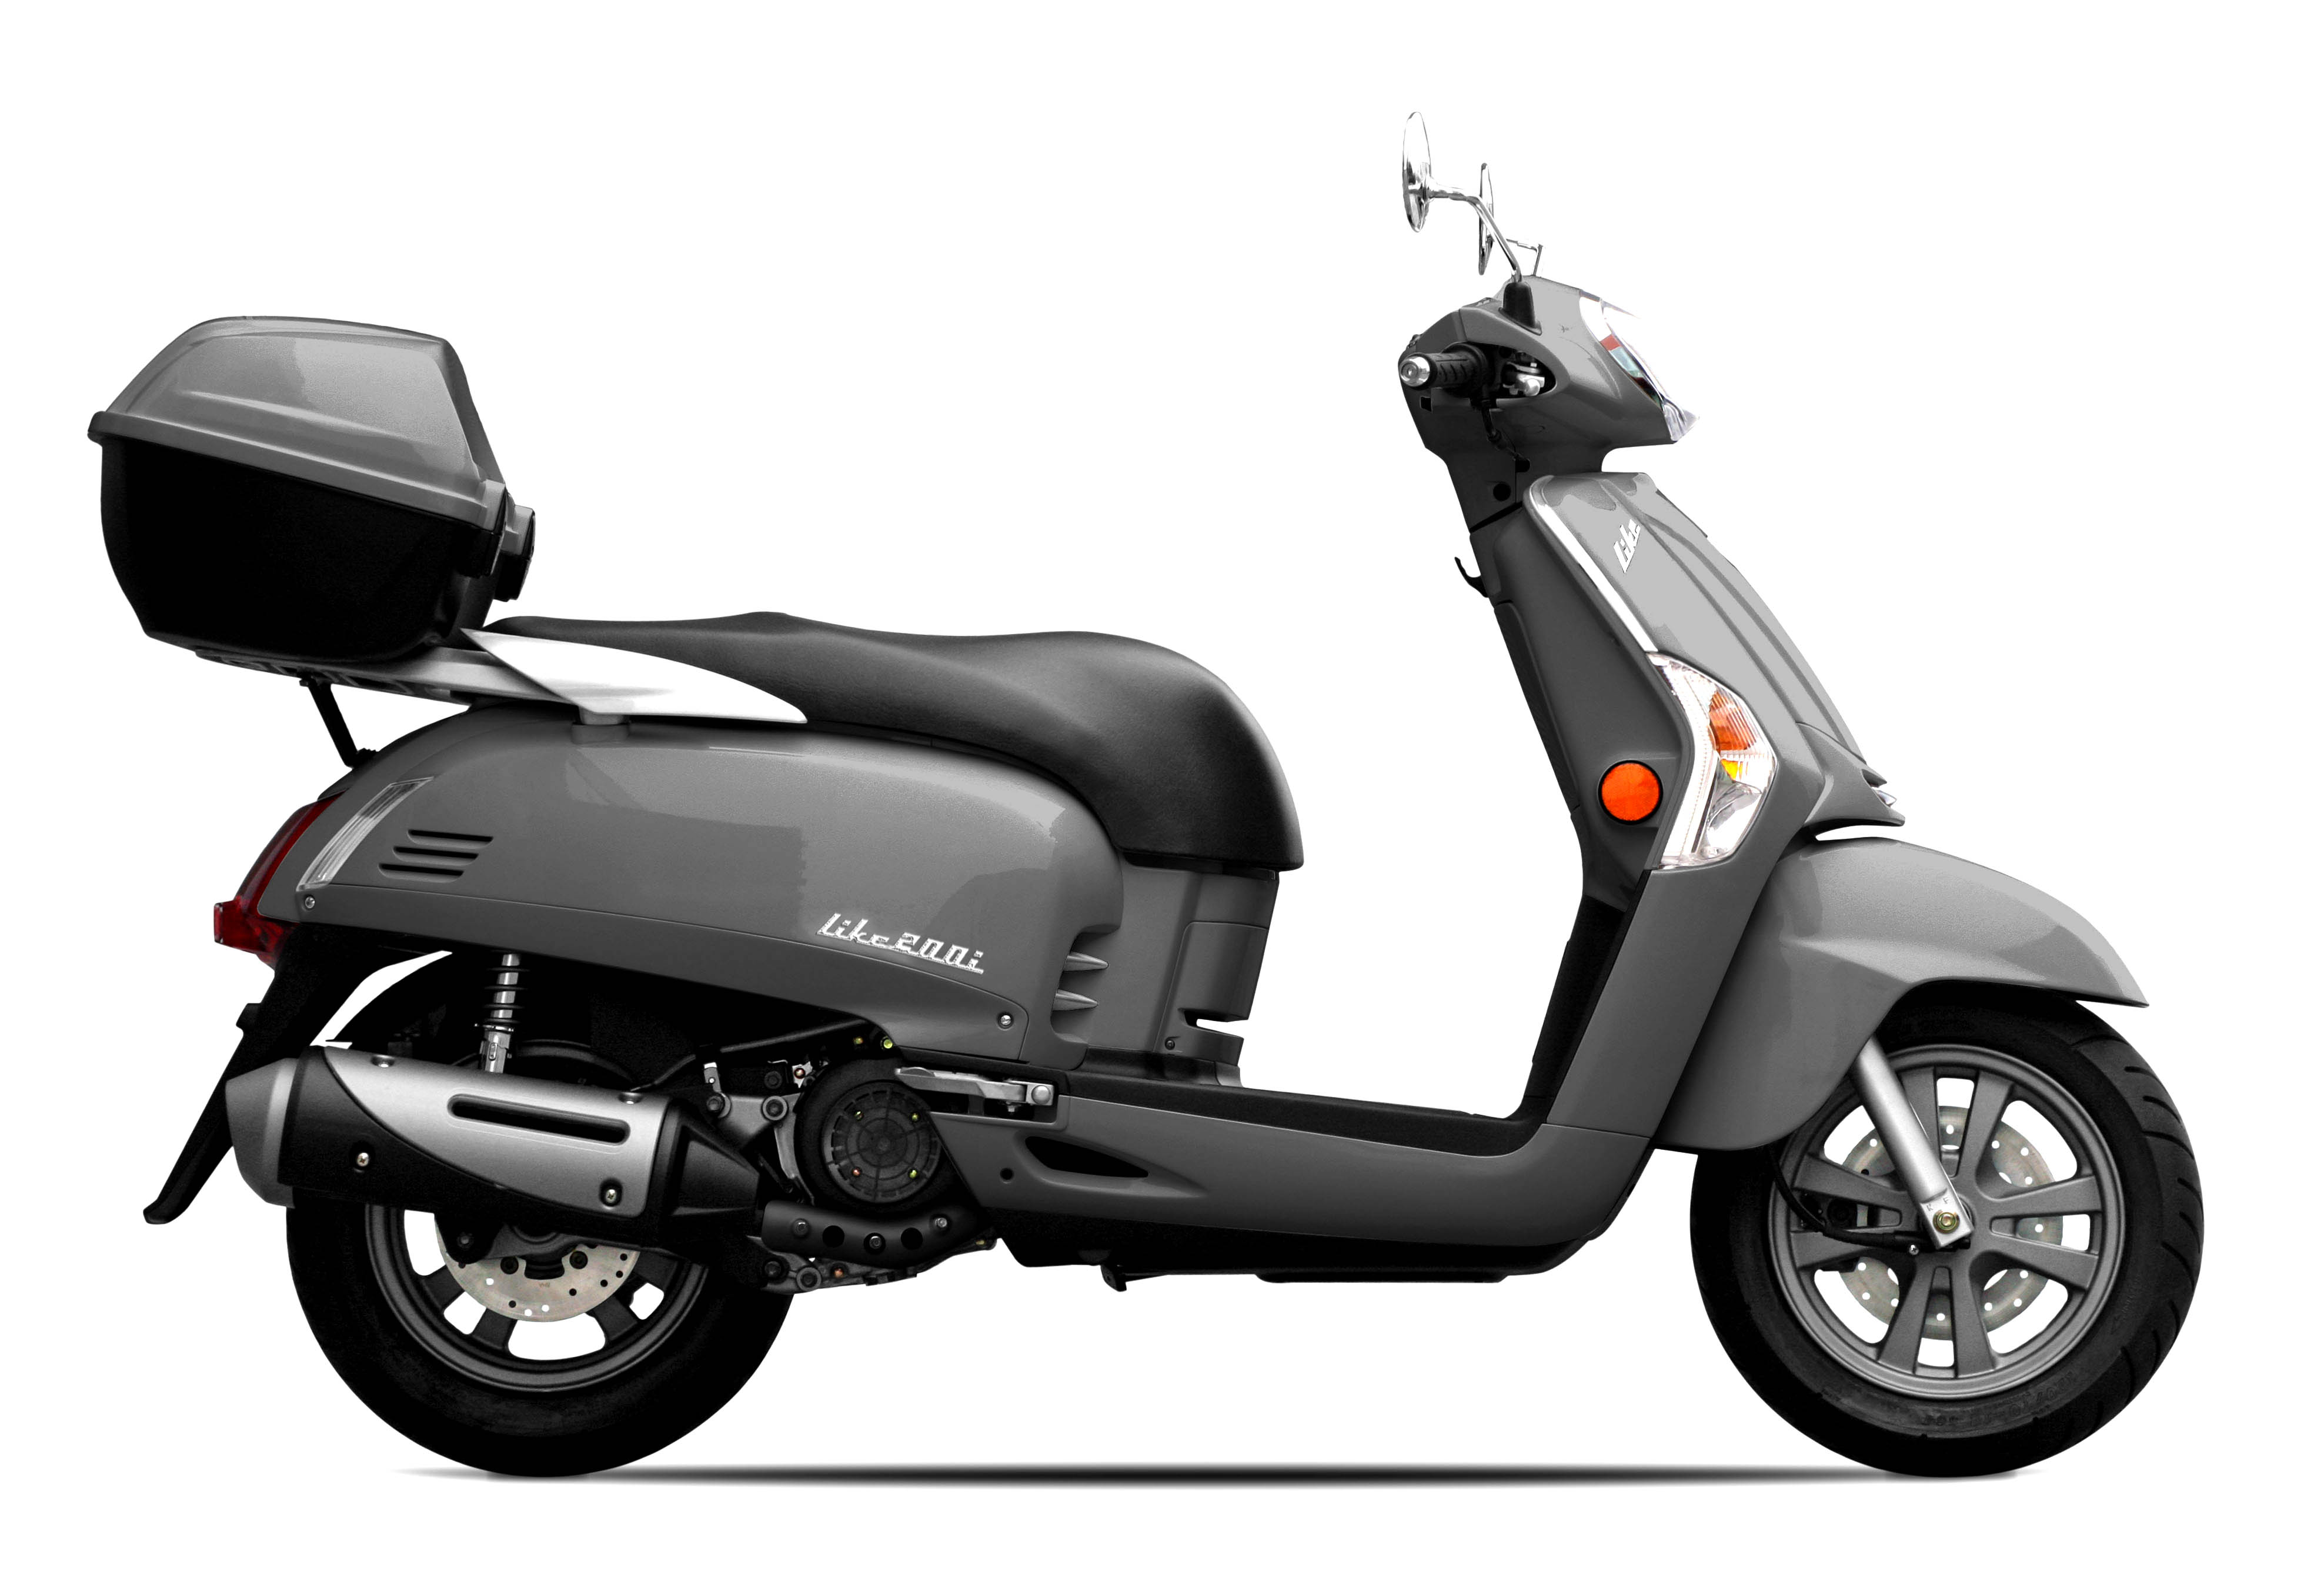 Kymco Heroism 150 1999 images #100673